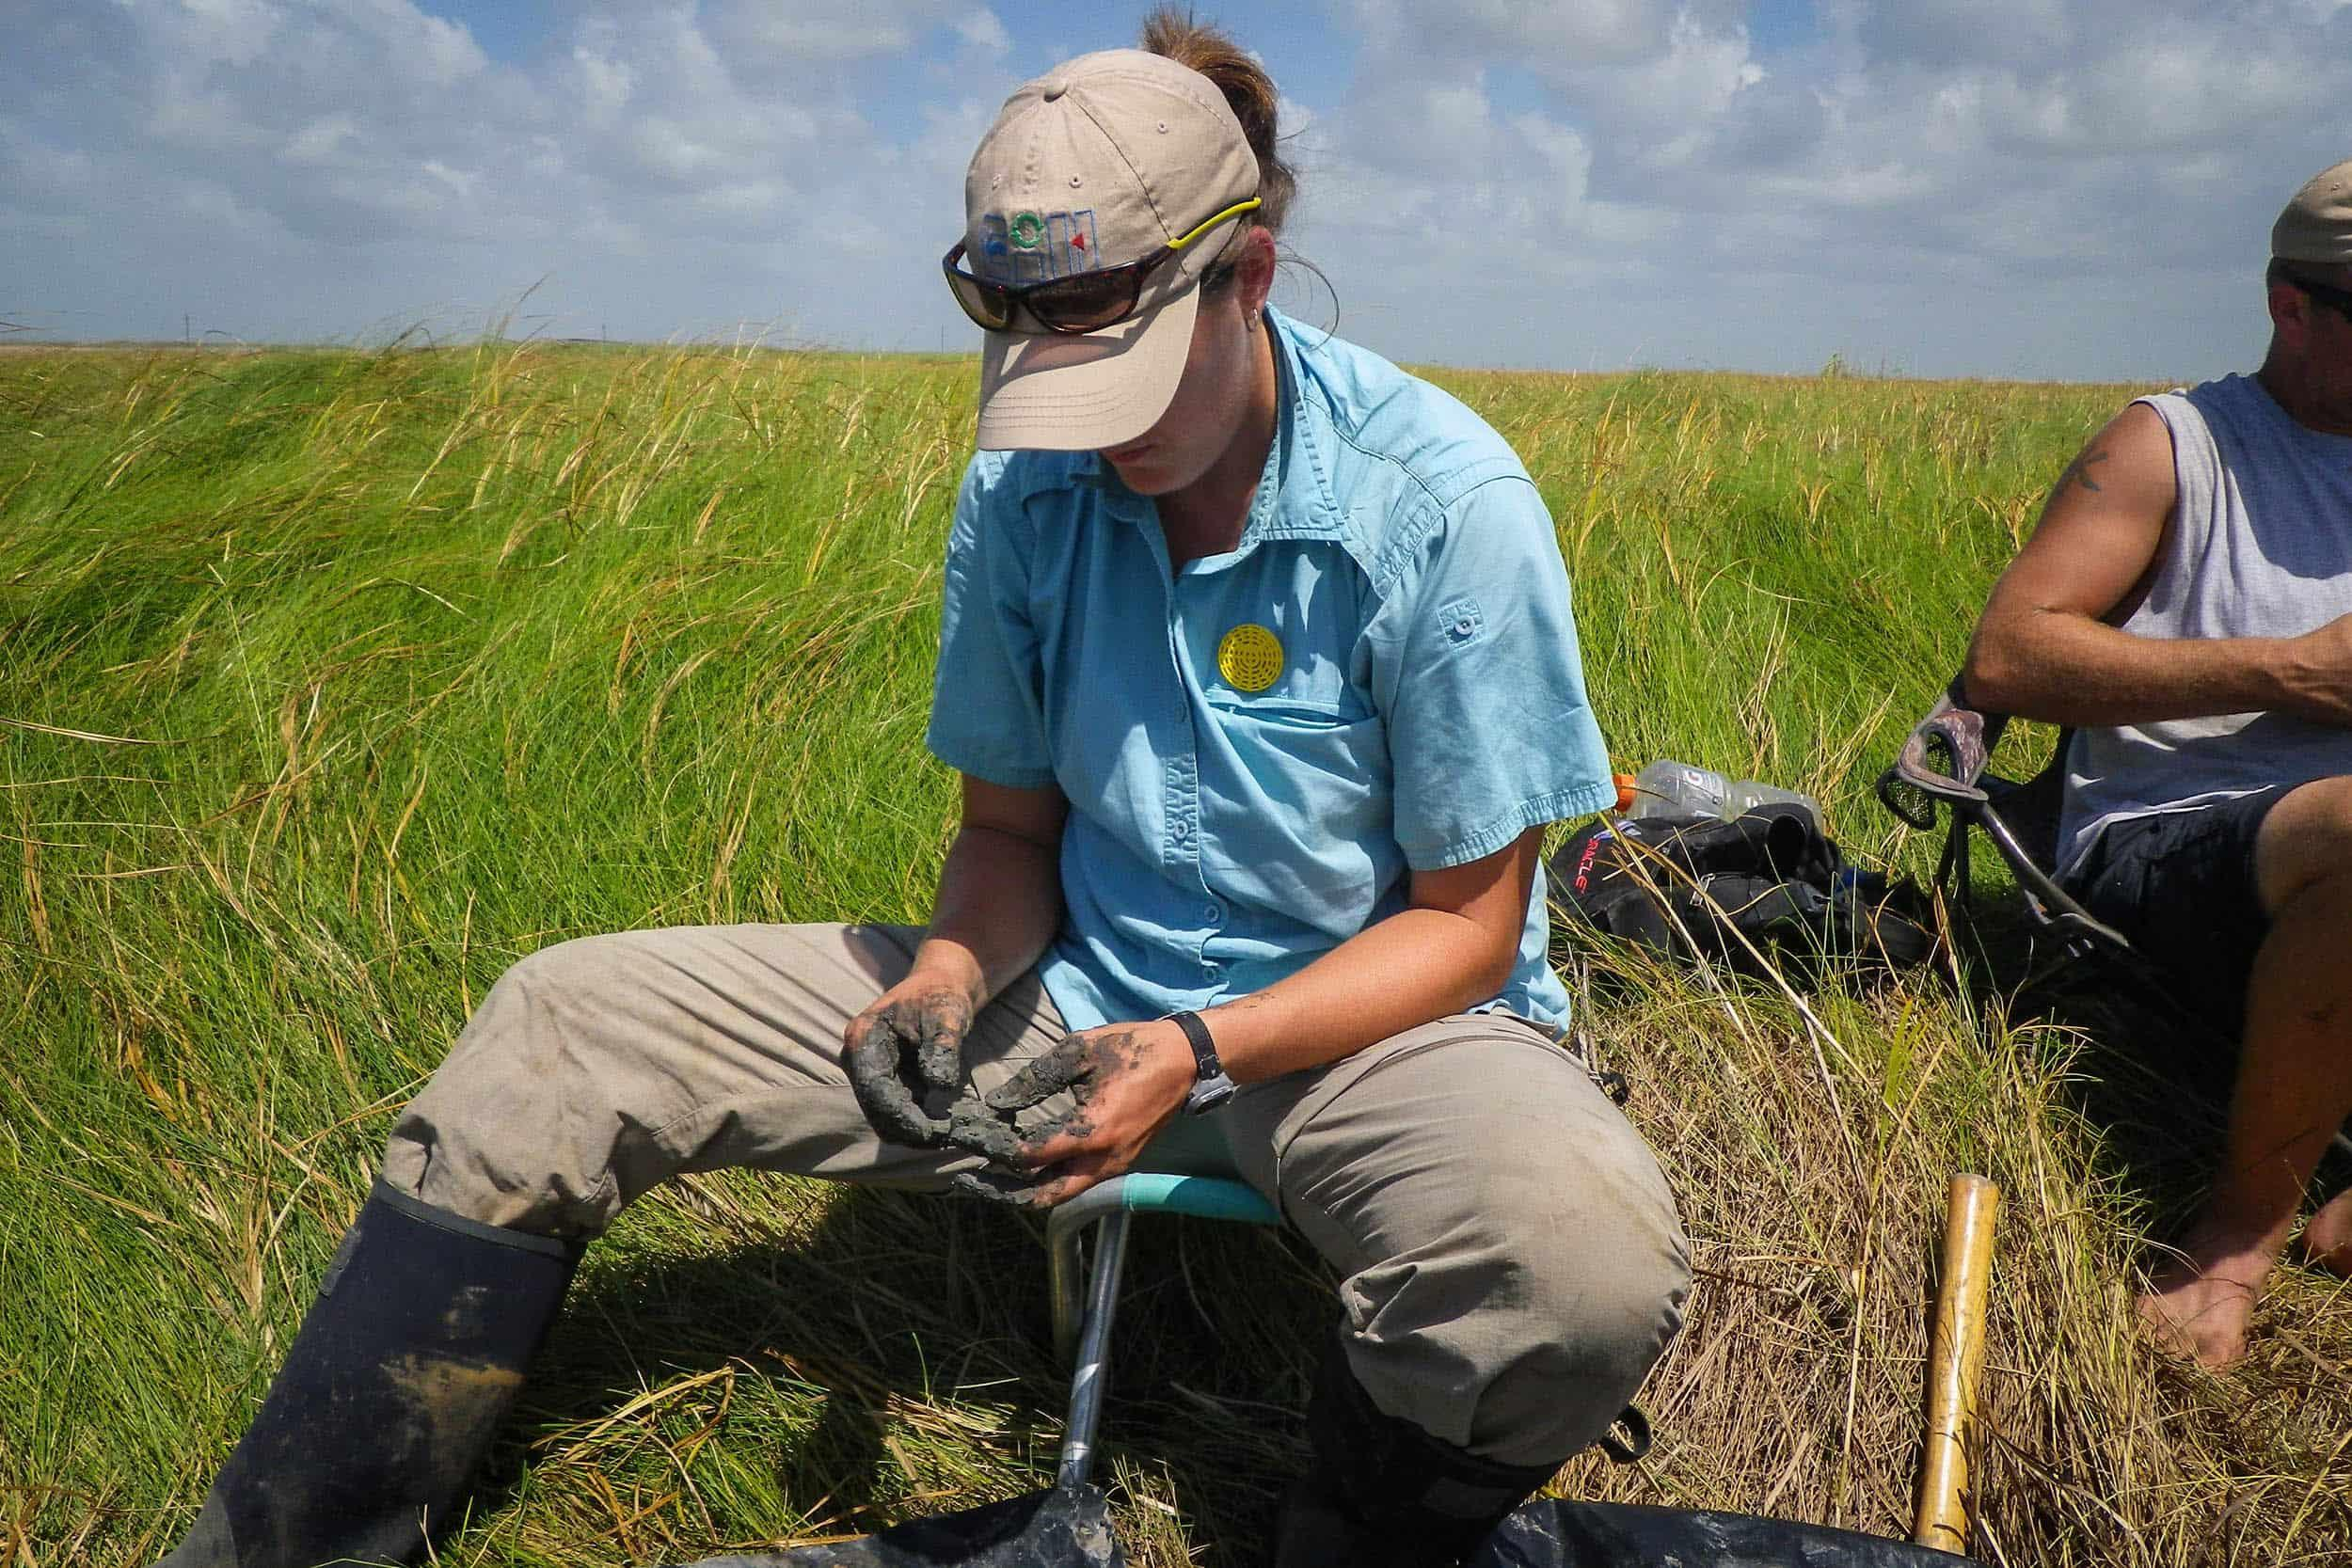 Misty Shepard, research associate, characterizes a soil sample at the McFaddin National Wildlife Refuge